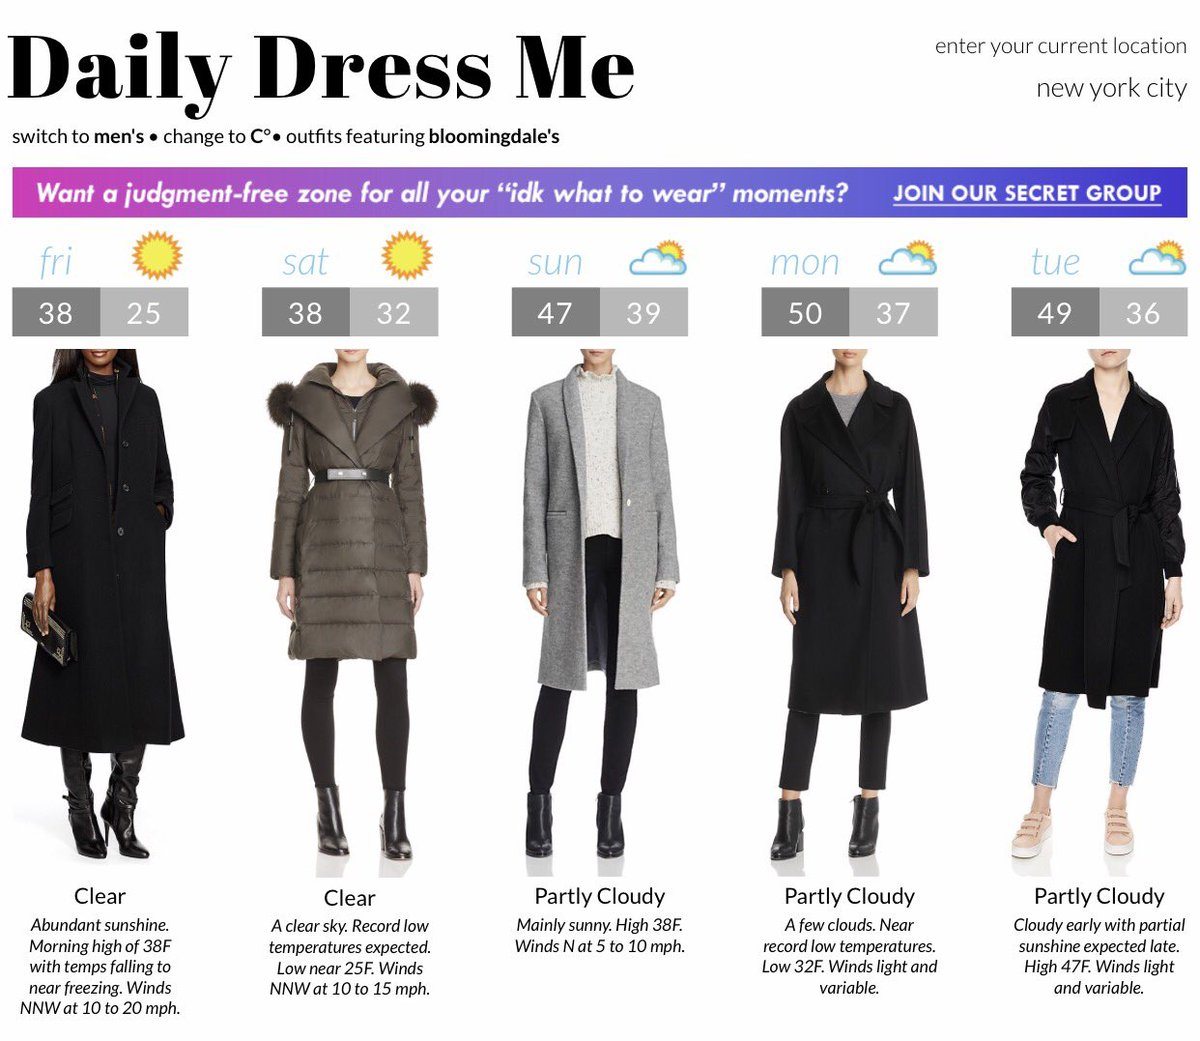 Buy Wear to what 37 degrees pictures trends